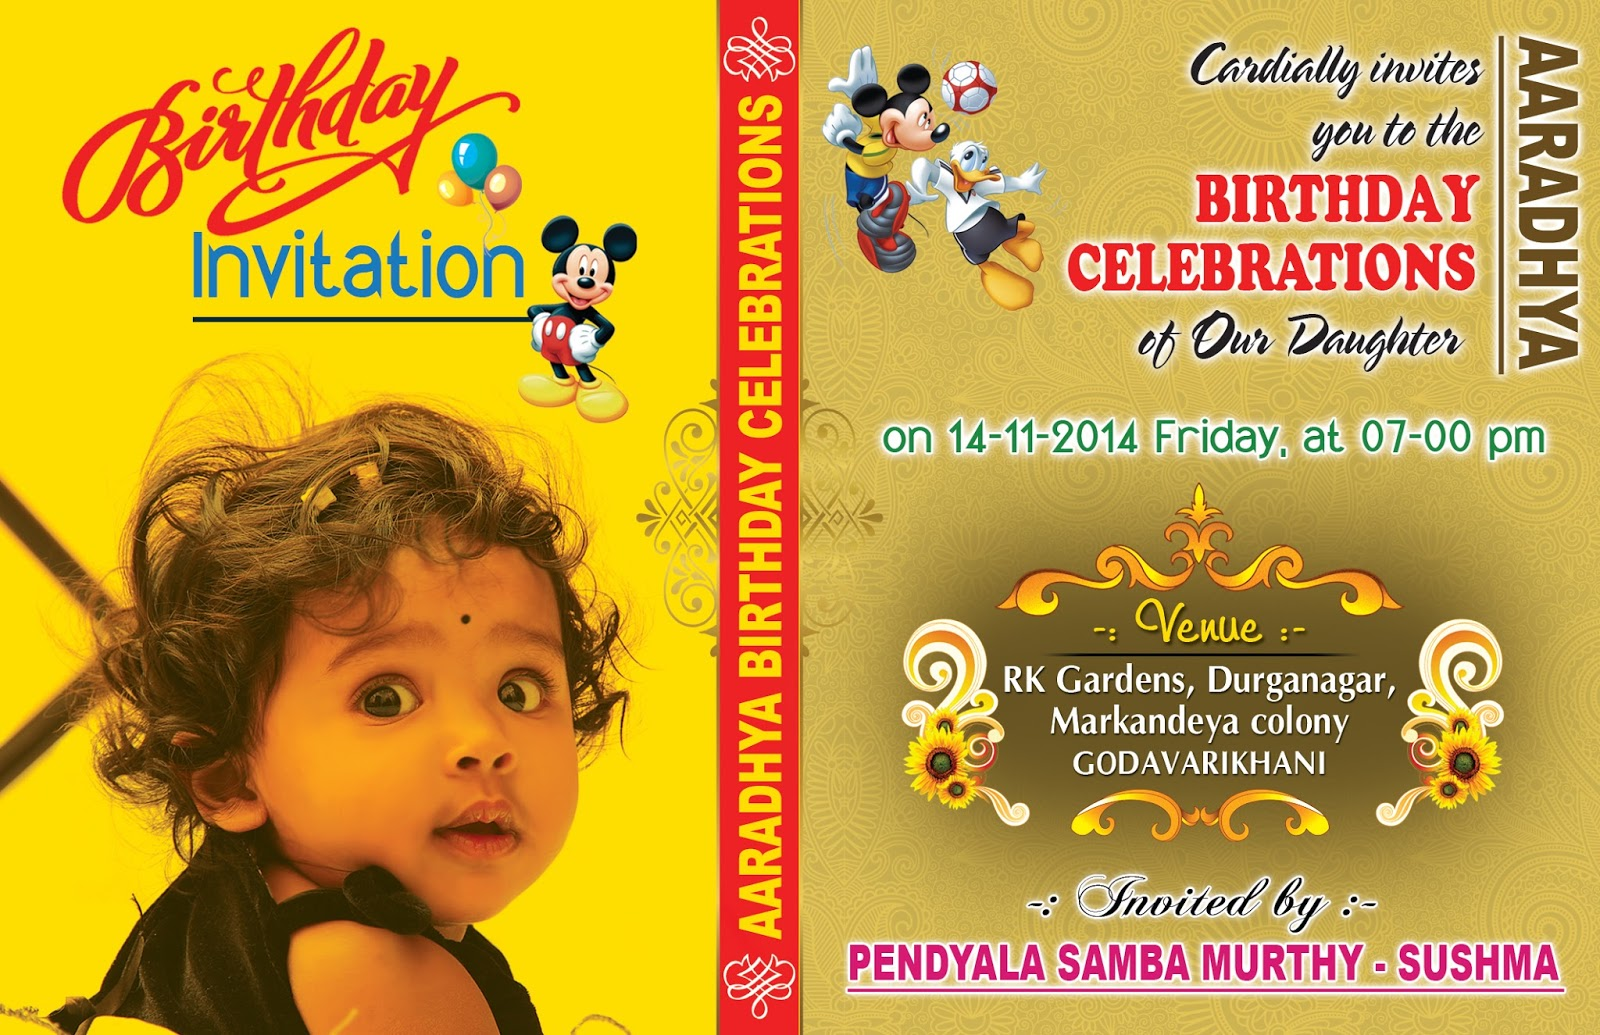 First Birthday Invitation Card Free Template – Invitation Card for Birthday